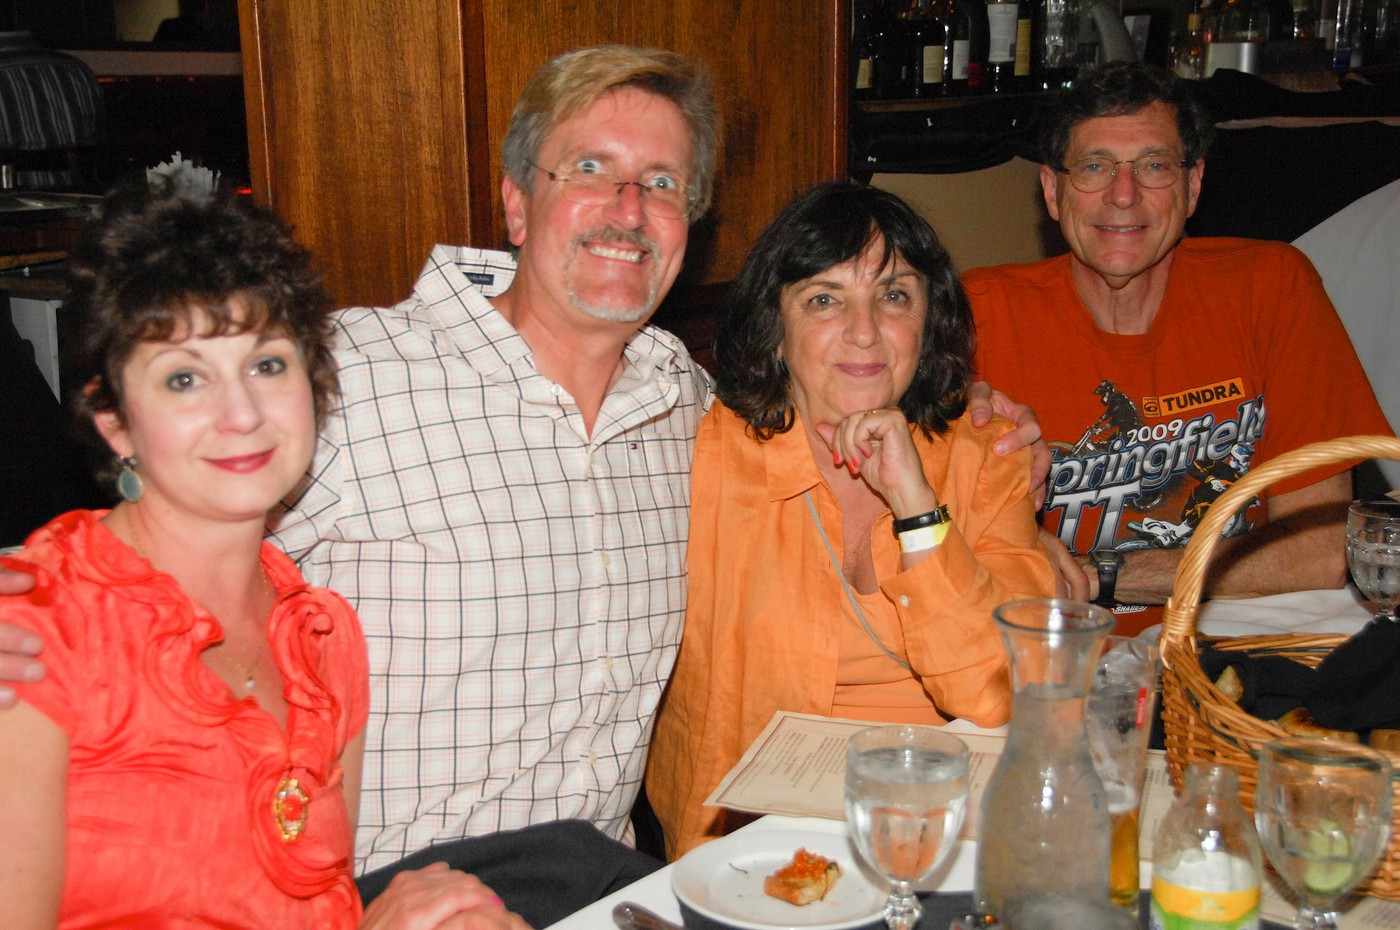 Ruth Deluca, Al Deluca, Sandy Blum and Ed Blum